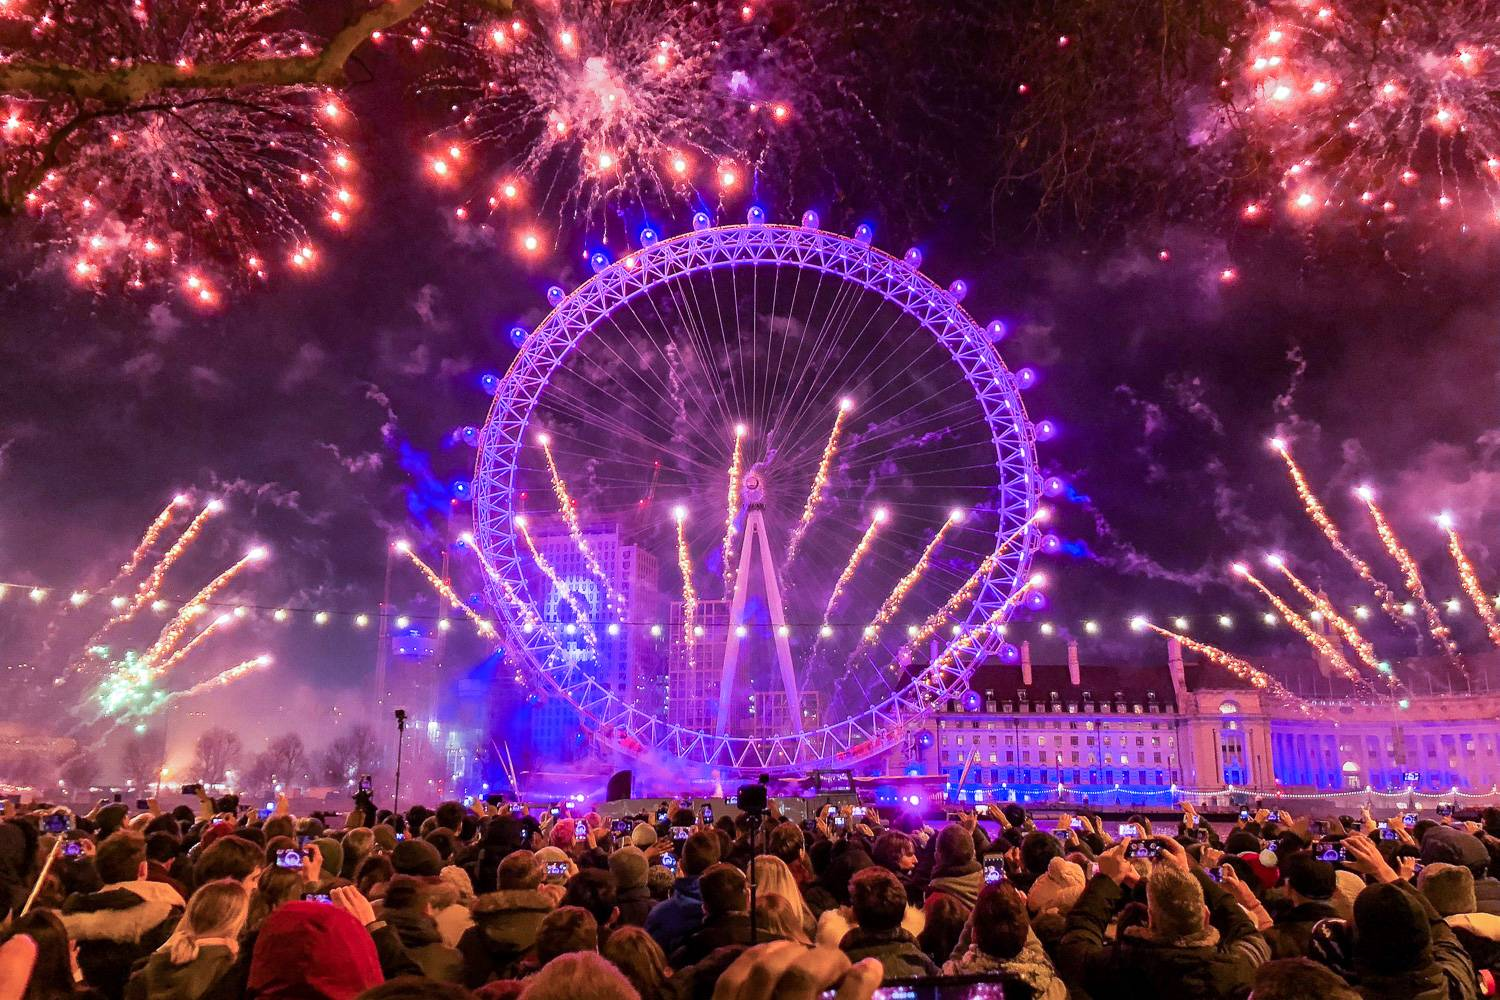 Image of the fireworks display at the London Eye